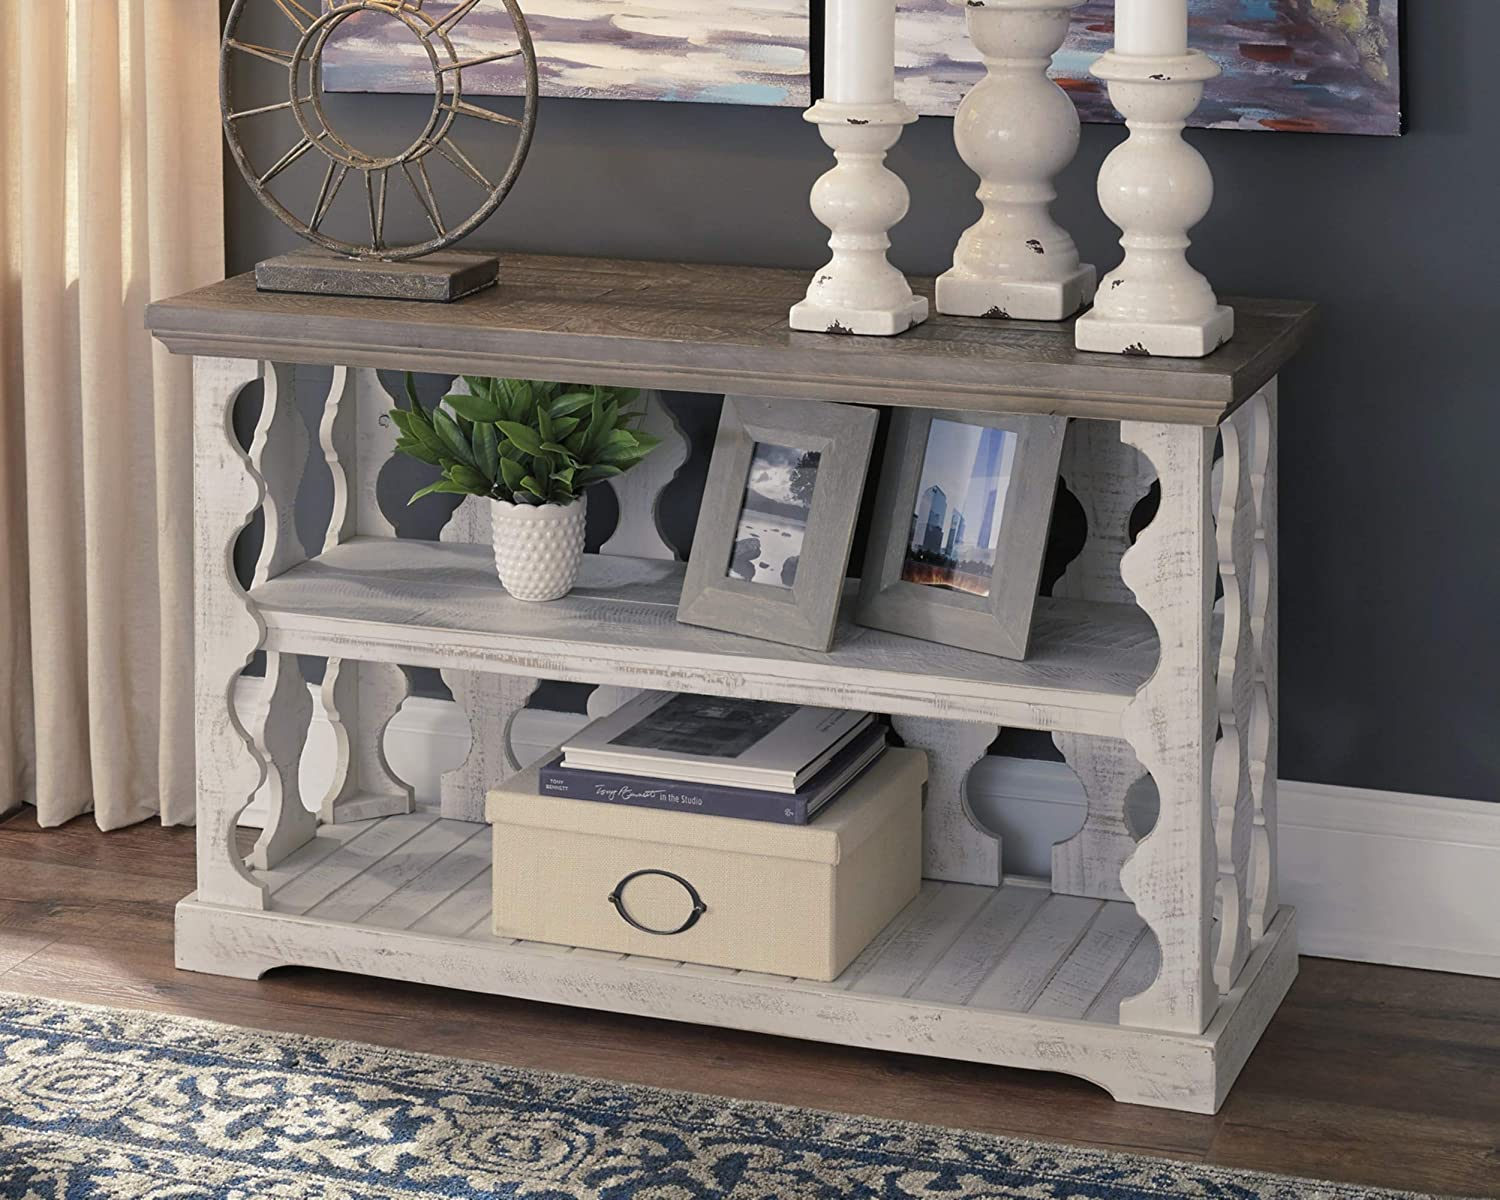 Signature Design by Ashley – Havalance Farmhouse Console Table, Whitewash Brown Wood